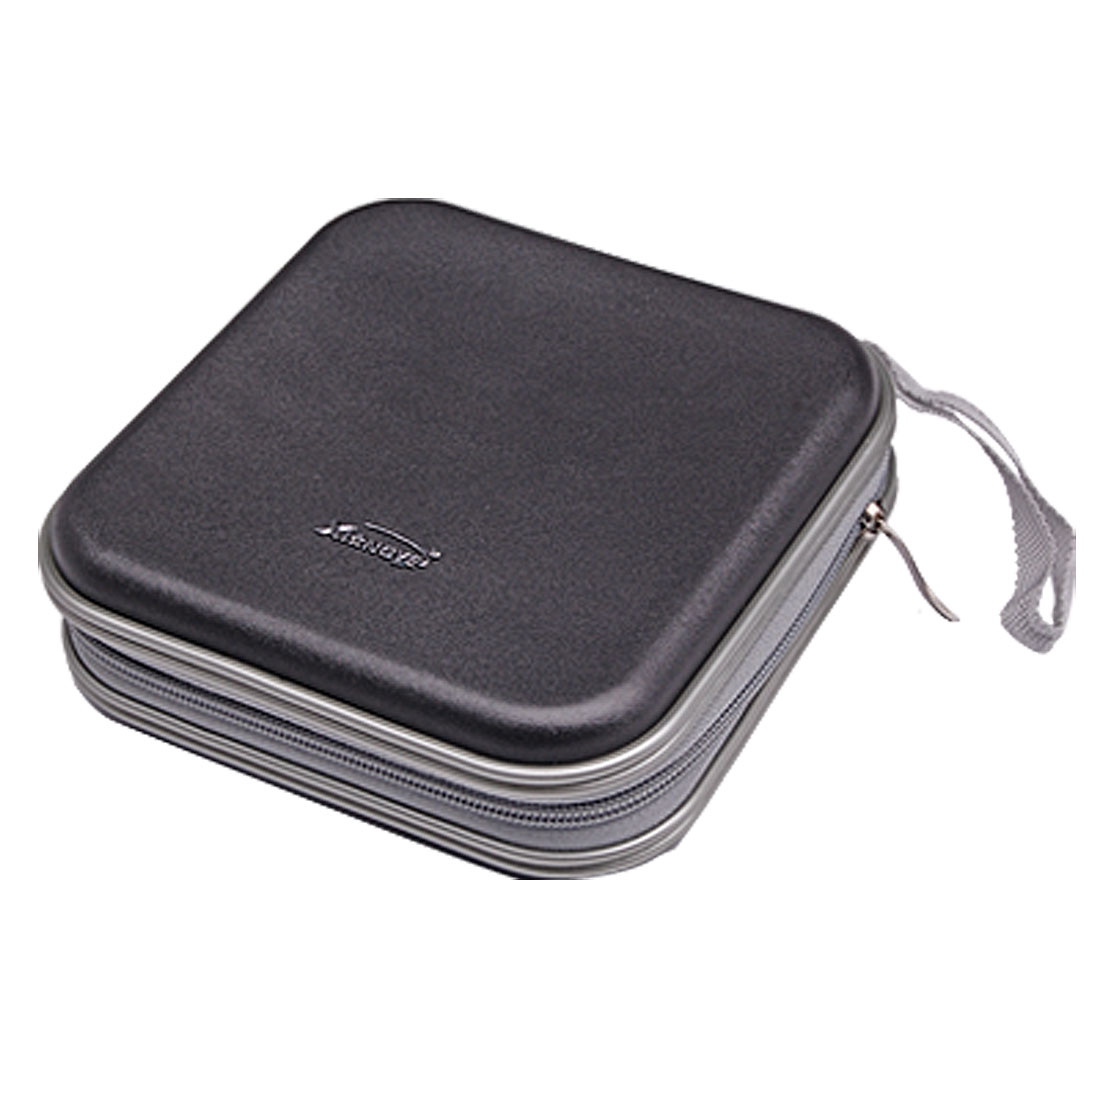 40 Disc CD VCD DVD Organizer Carrying Square Case Storage Black